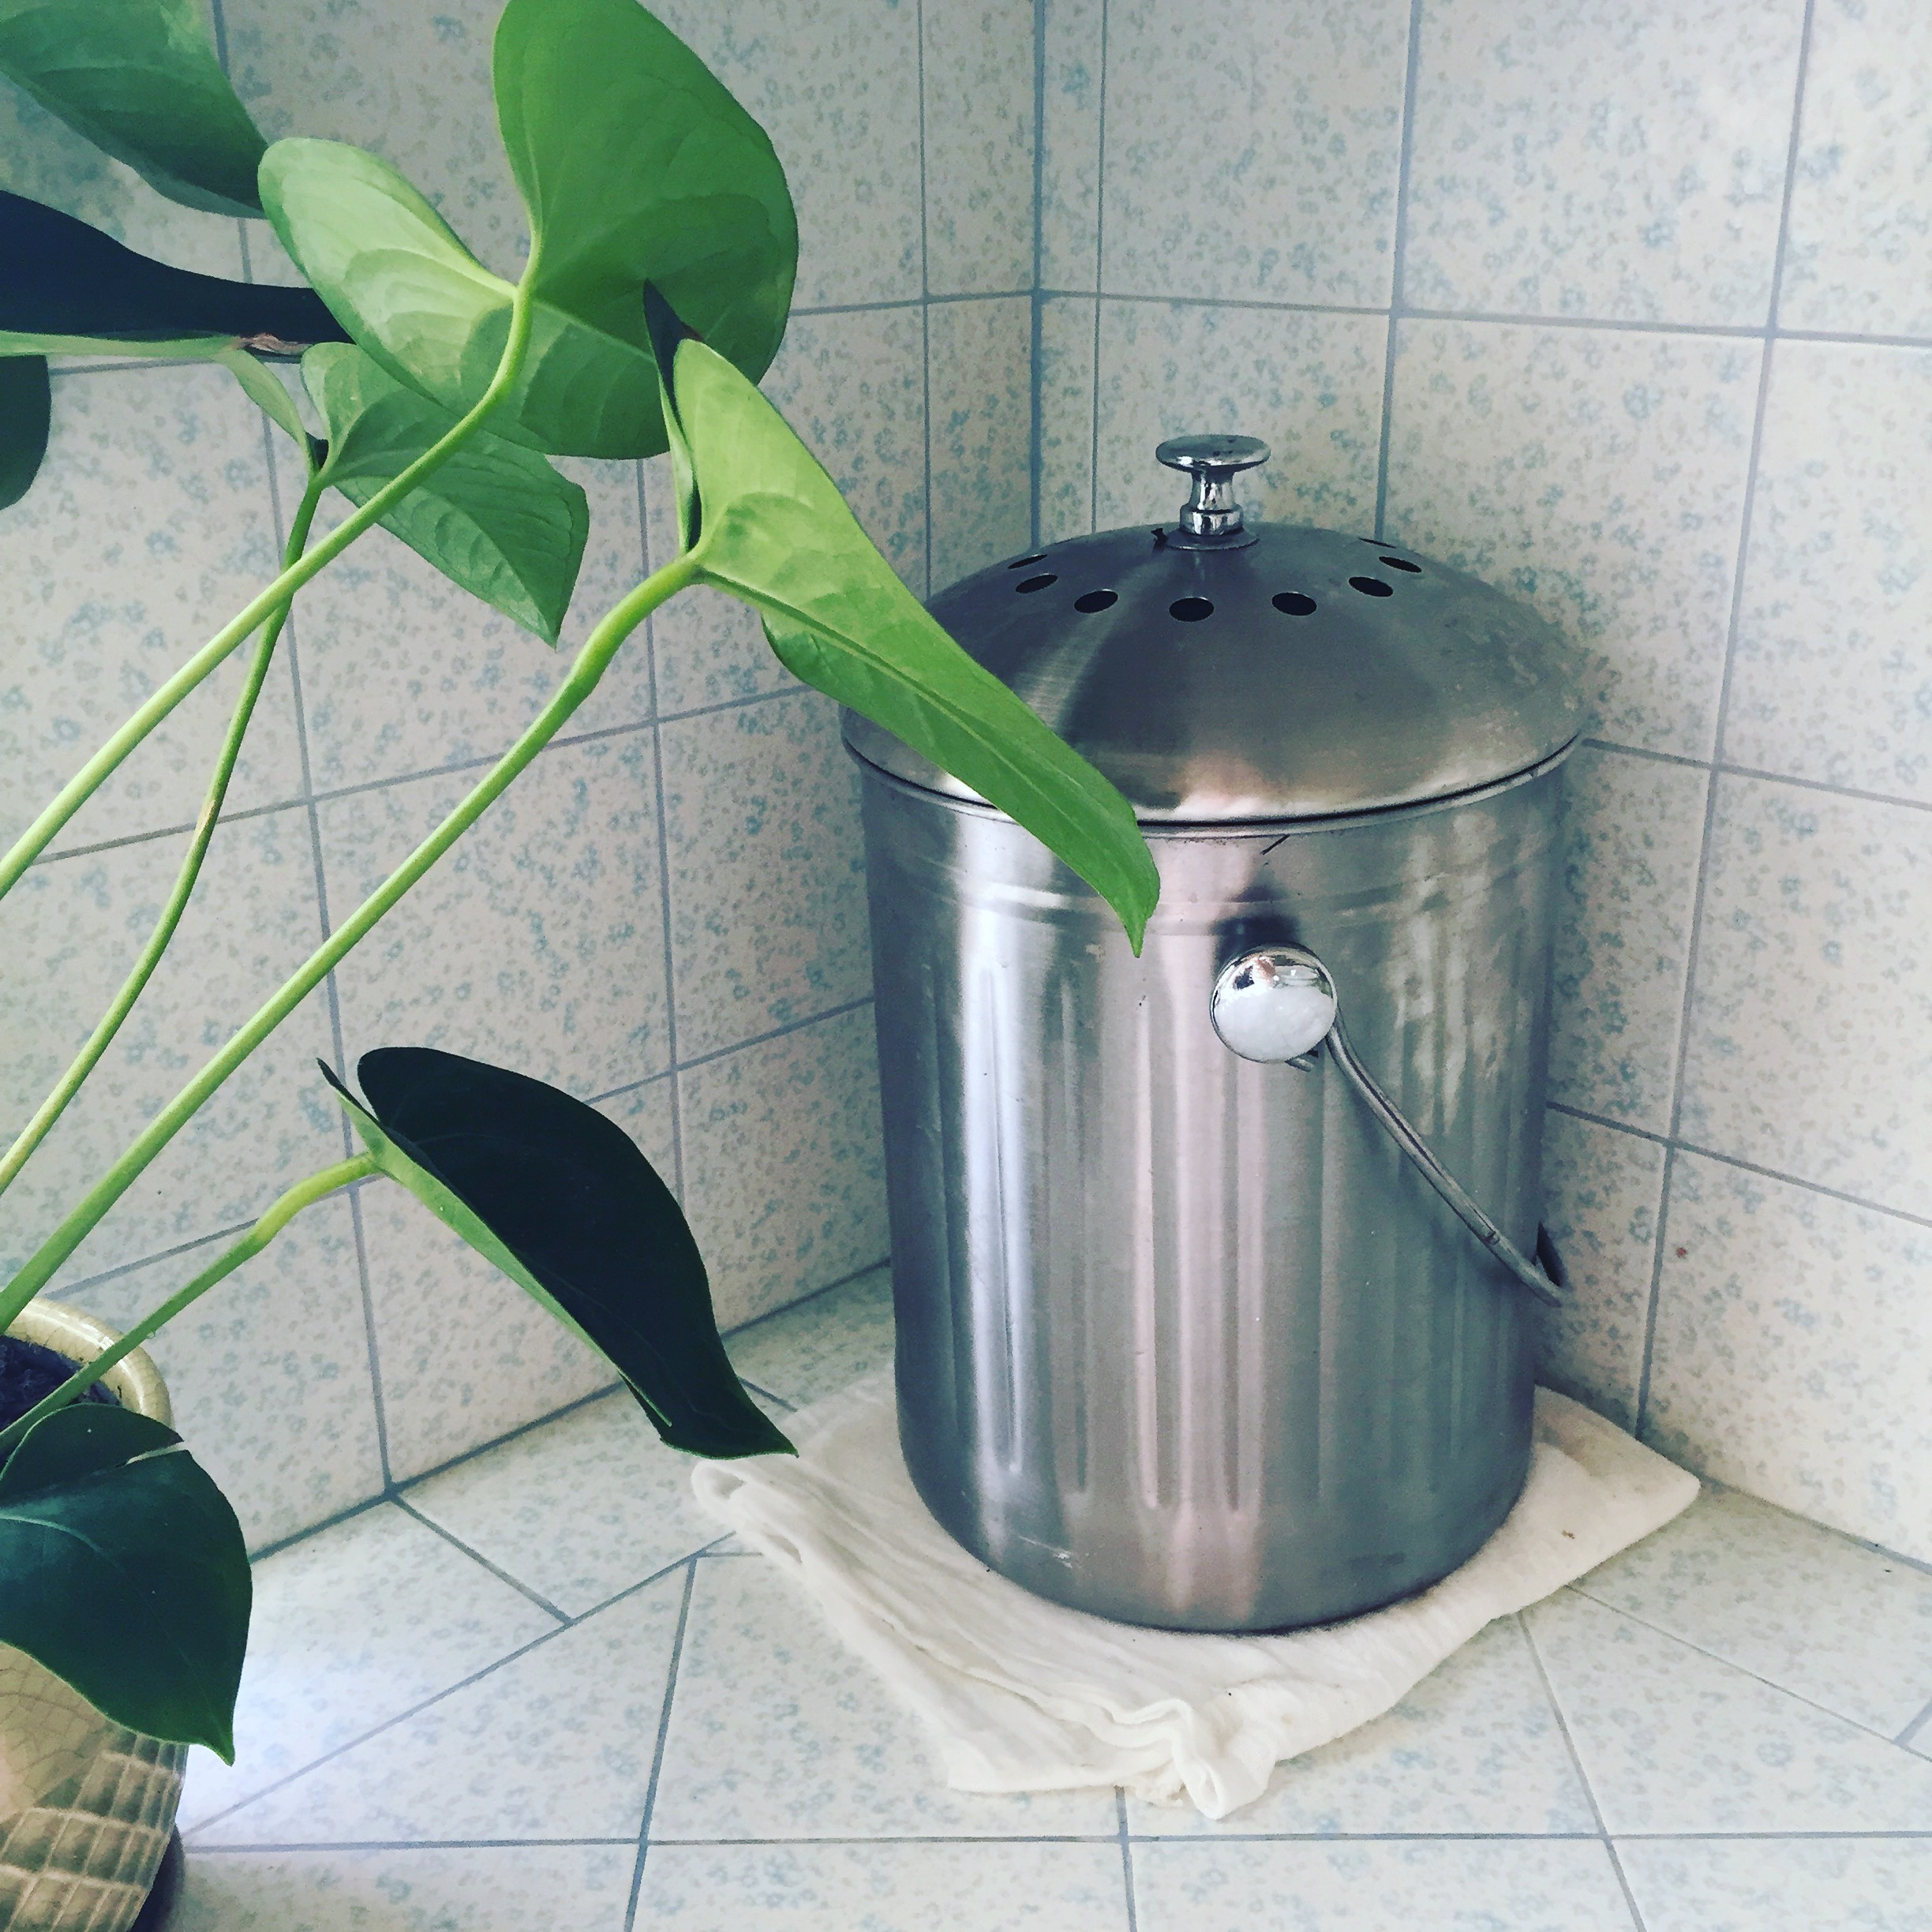 My stainless steel compost bucket.